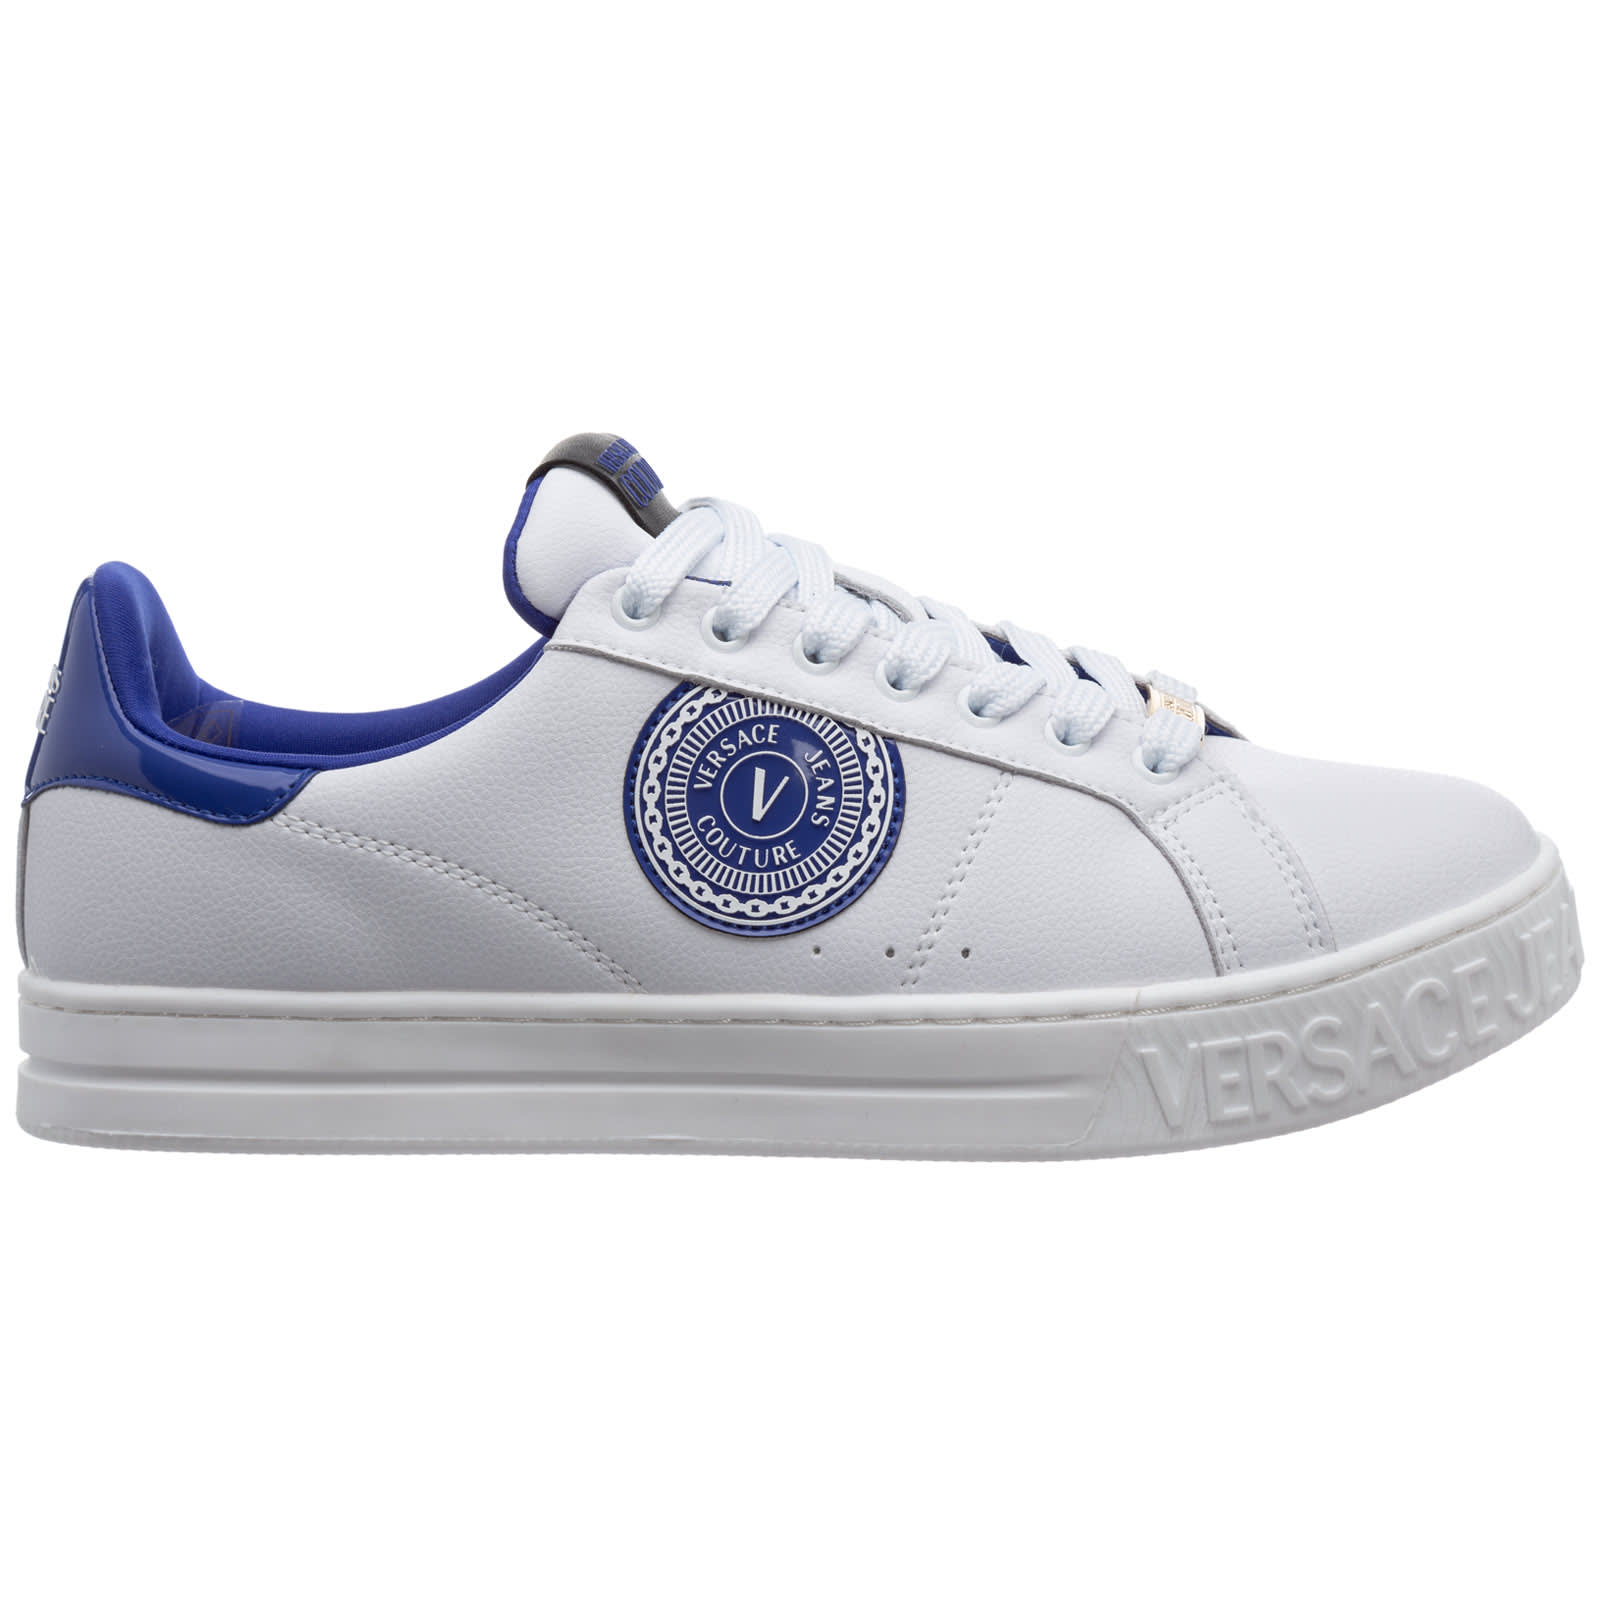 Versace Jeans Couture Sneakers FONDO COURT SNEAKERS